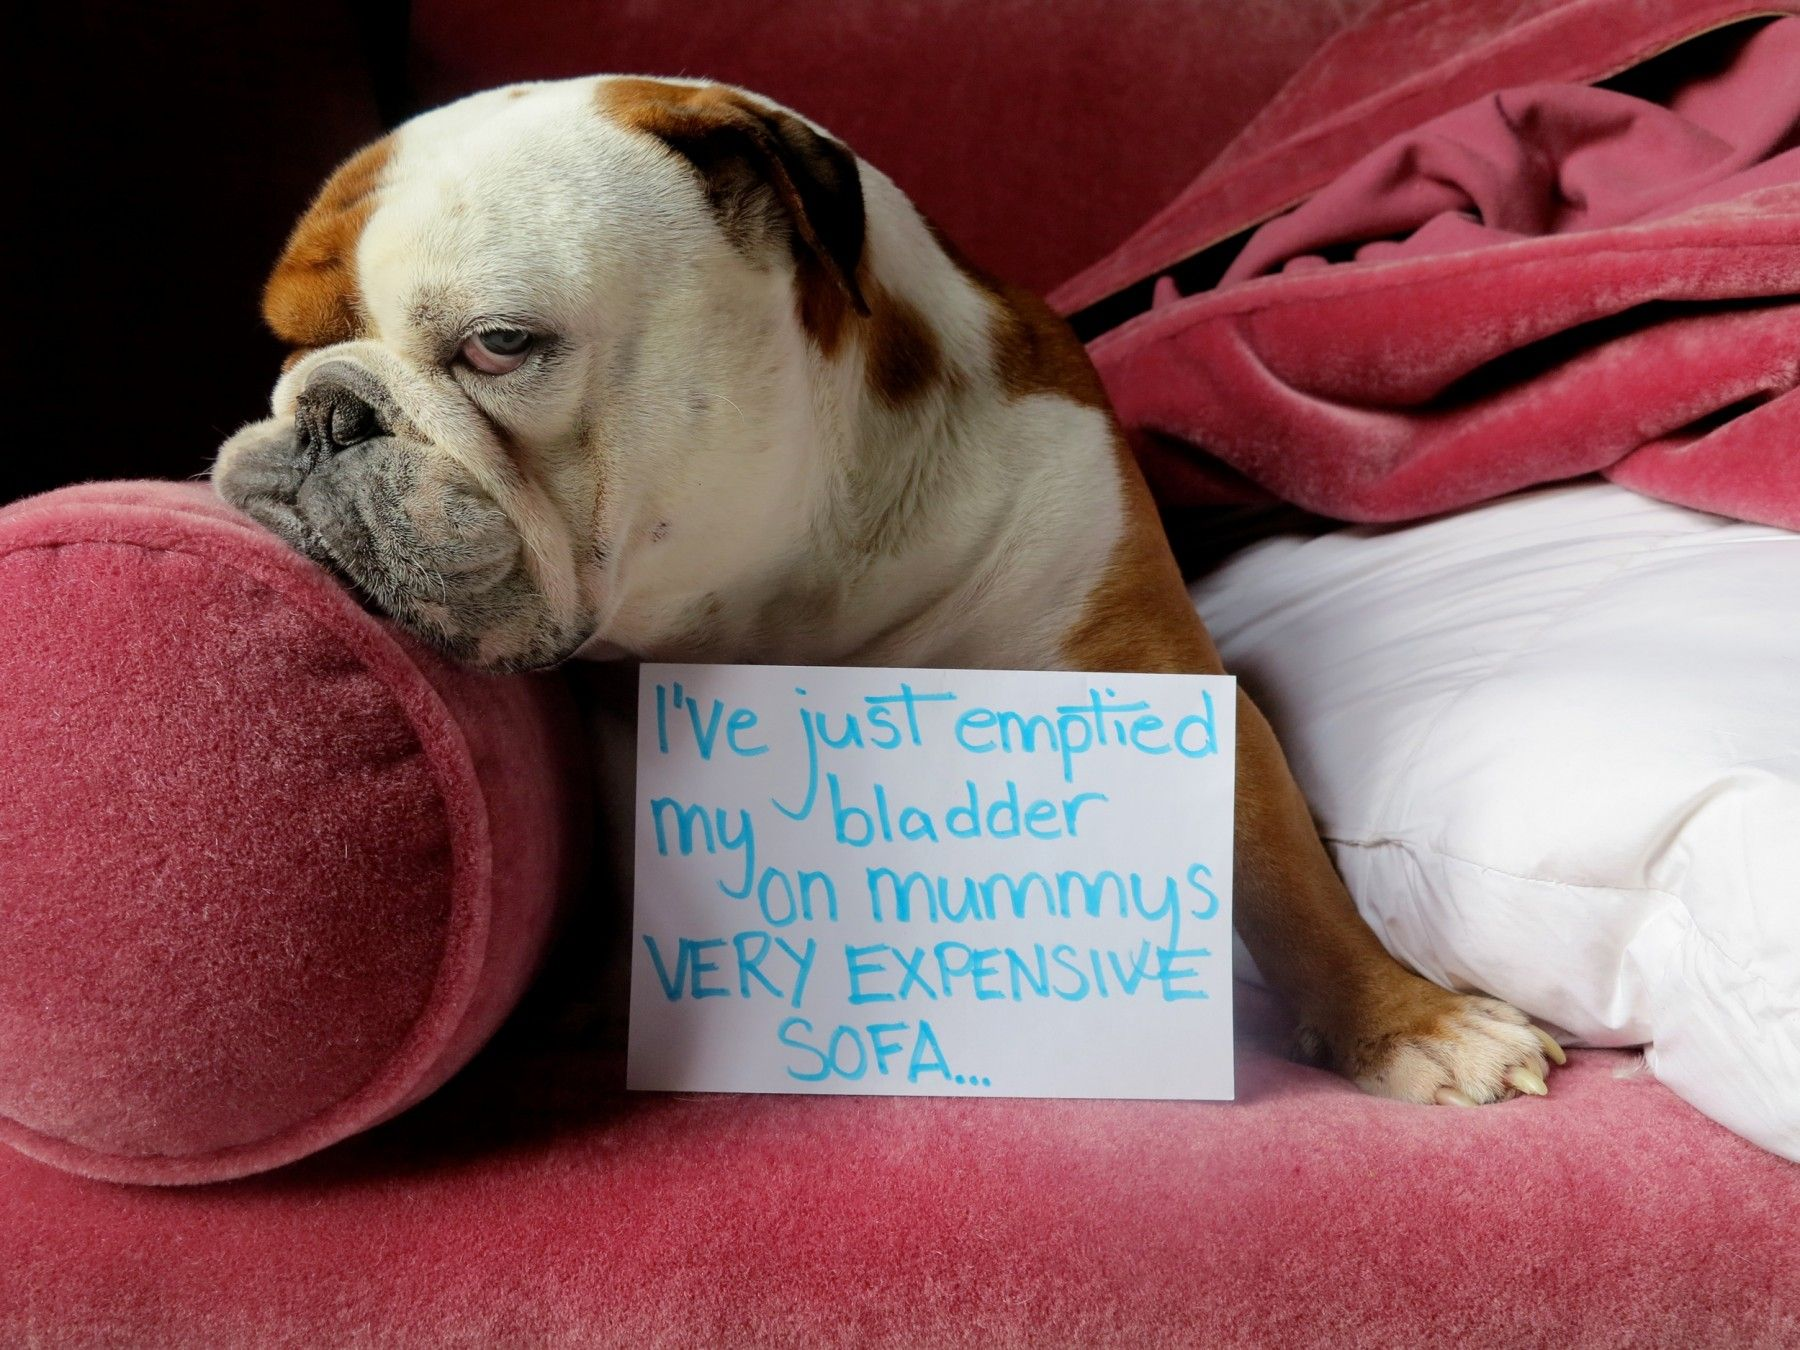 Dog Shaming 47 Park Avenue Dog Shaming Animal Shaming Dogs